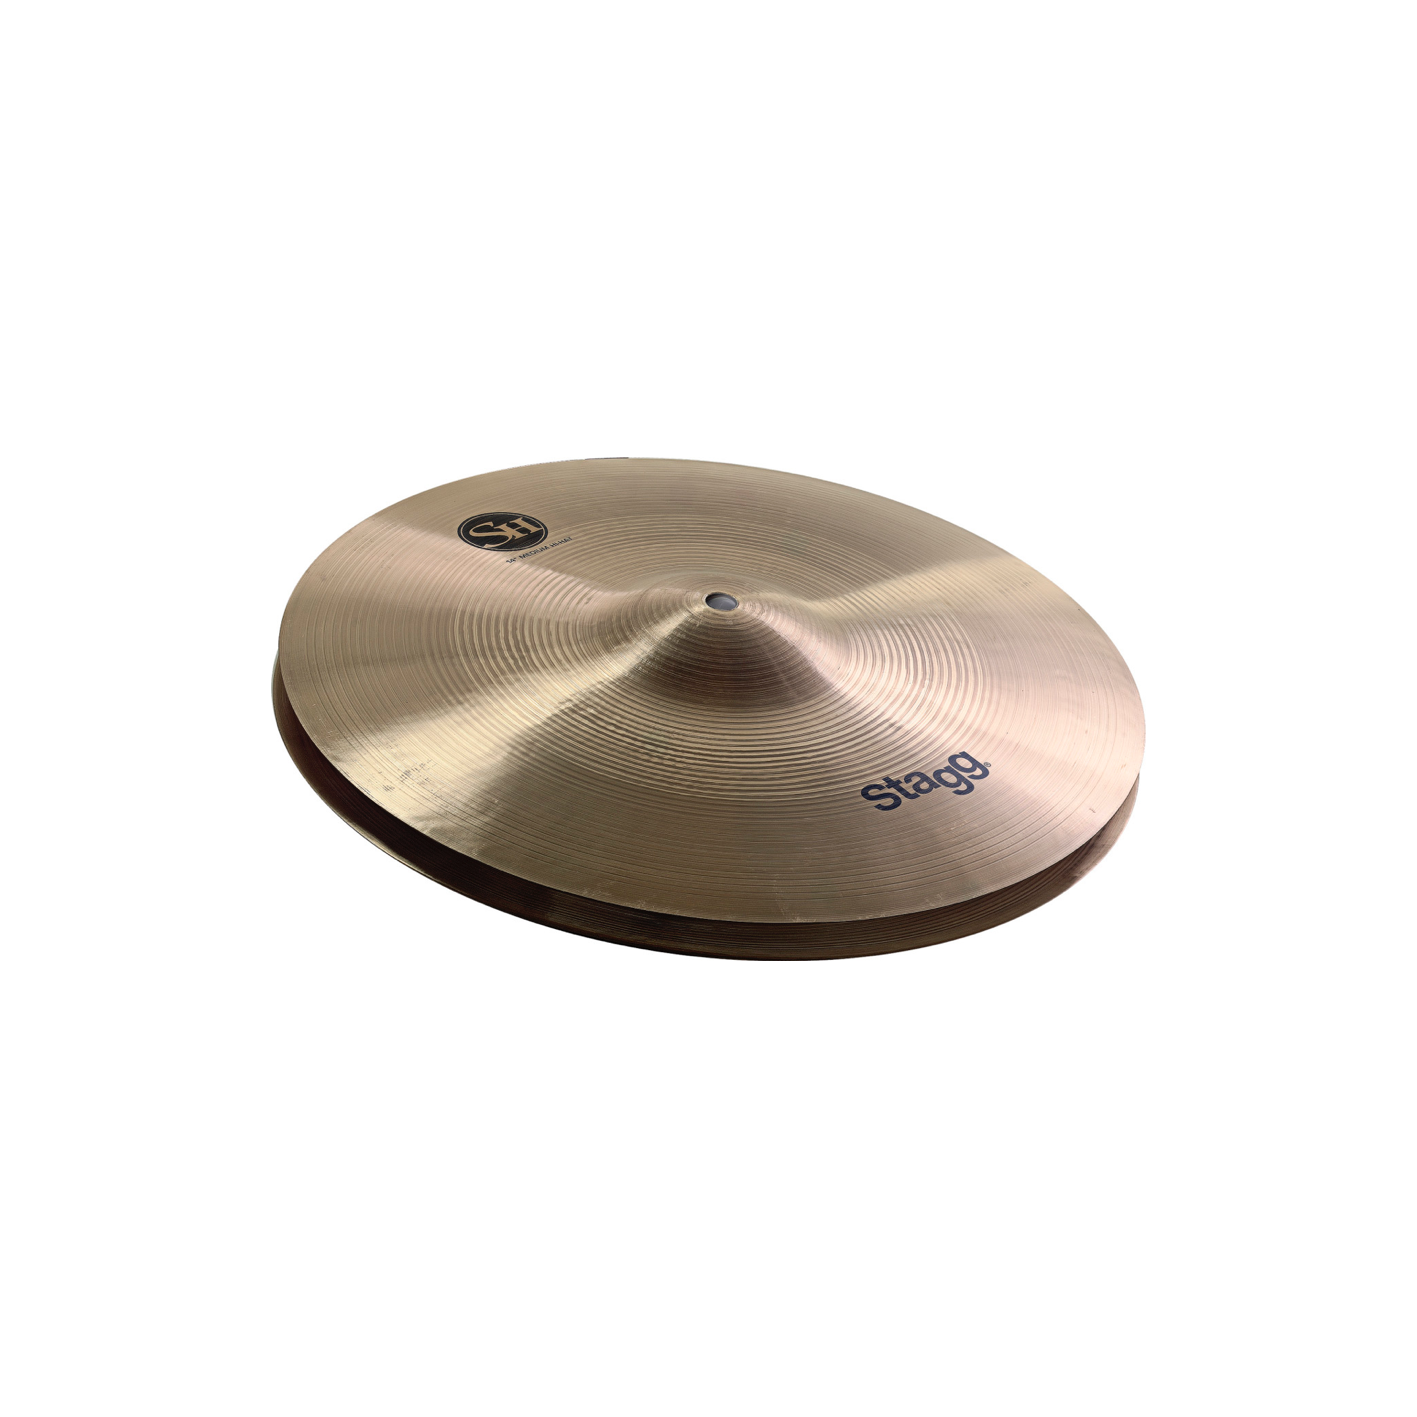 "Stagg SH-HM10R 10"" medium hi-hat cymbals (pair)"